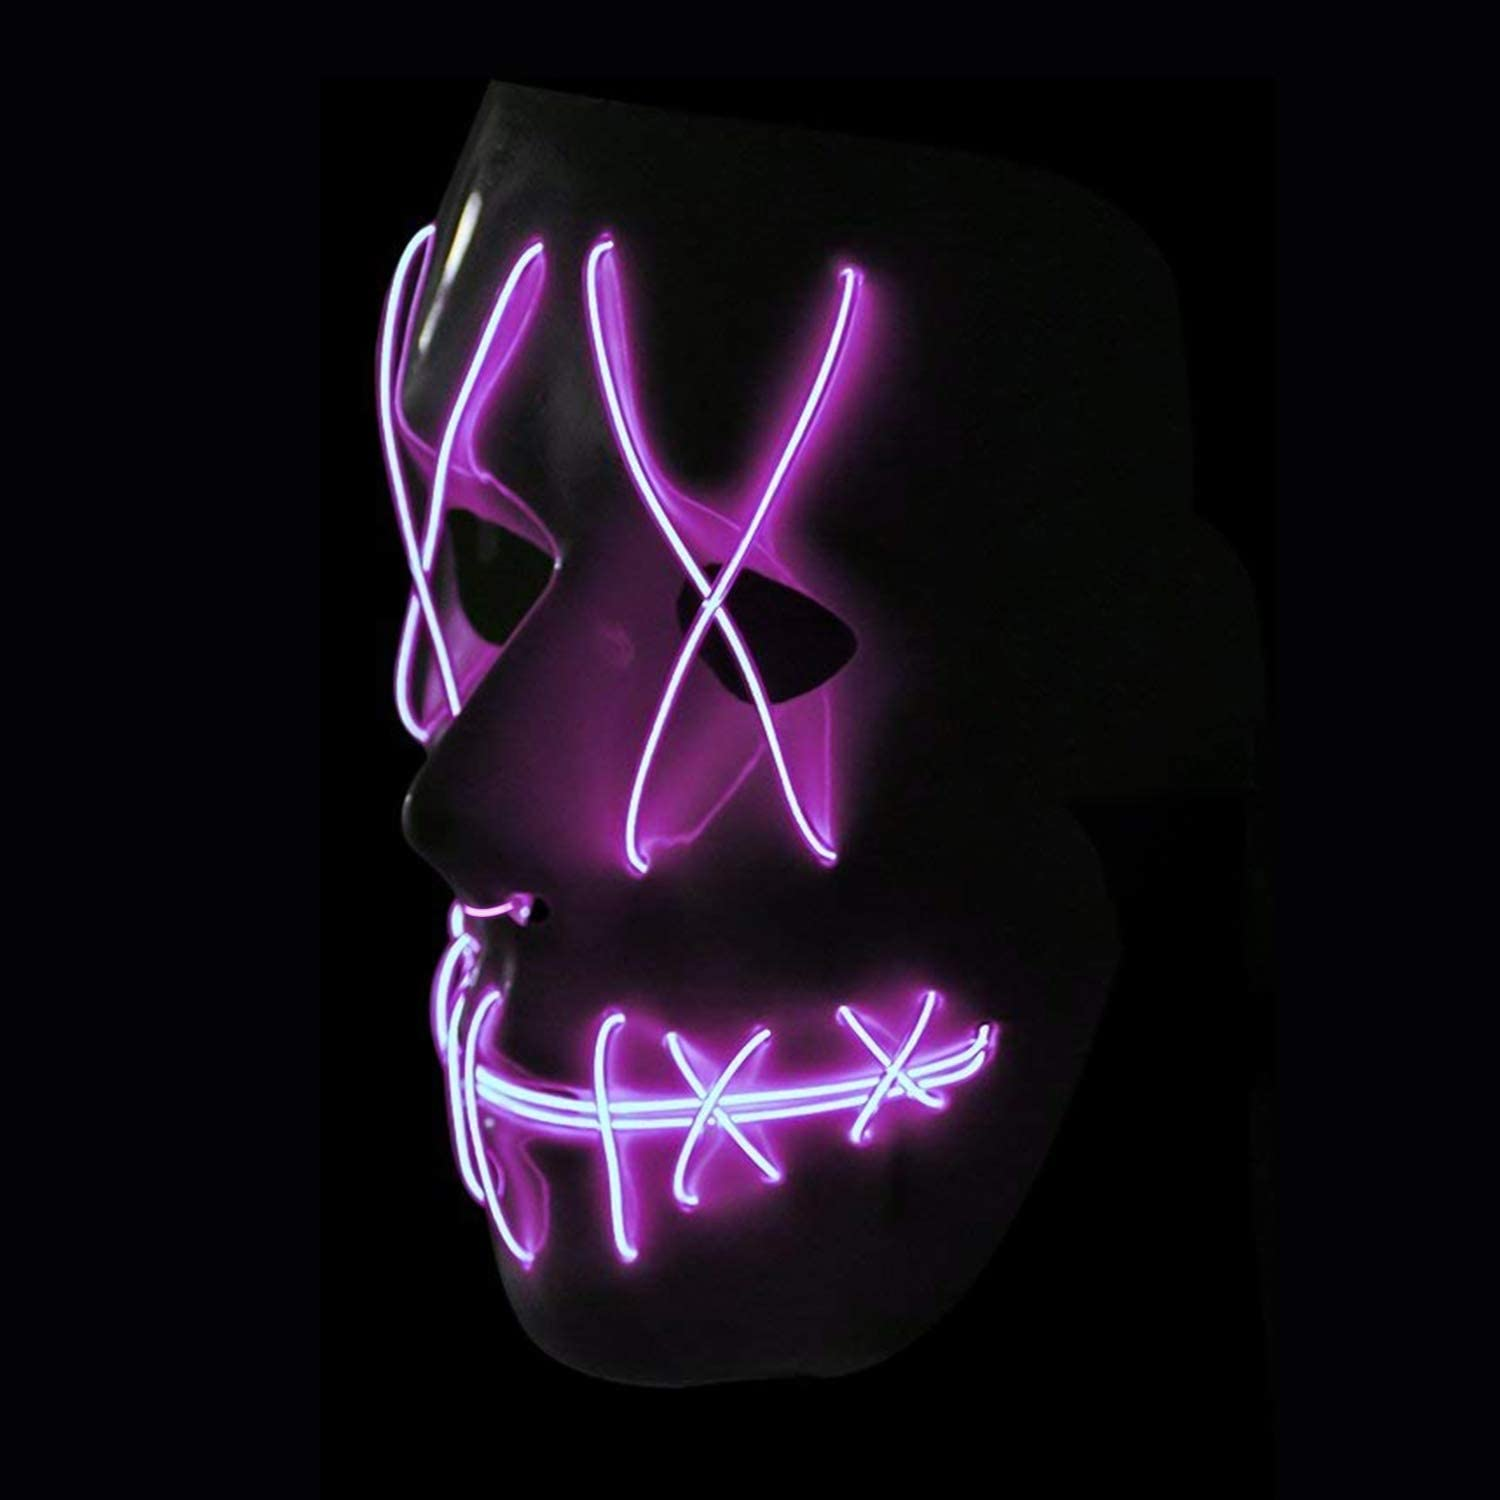 Halloween LED Mask Scary Mask Glowing Mask El Wire Light Up Mask for Halloween Costum Festival Rave Party